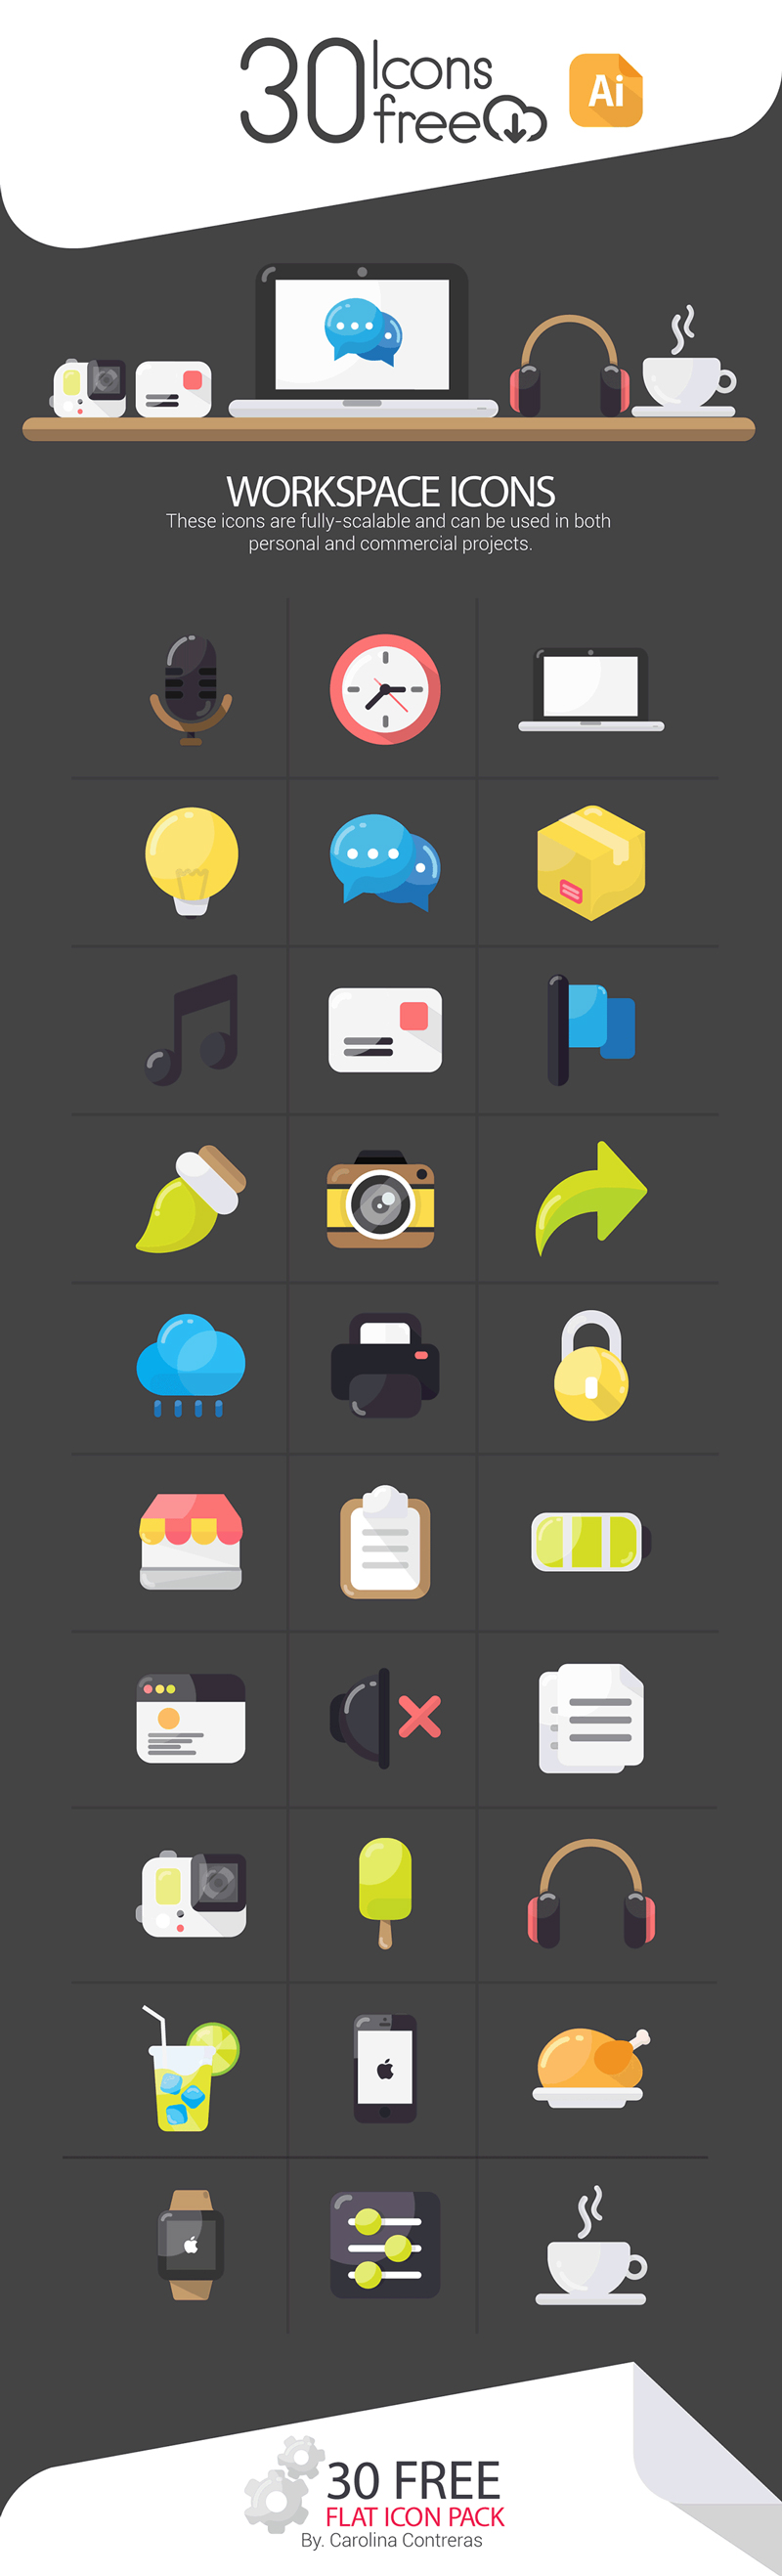 30-Free-Scalable-Workspace-Icons